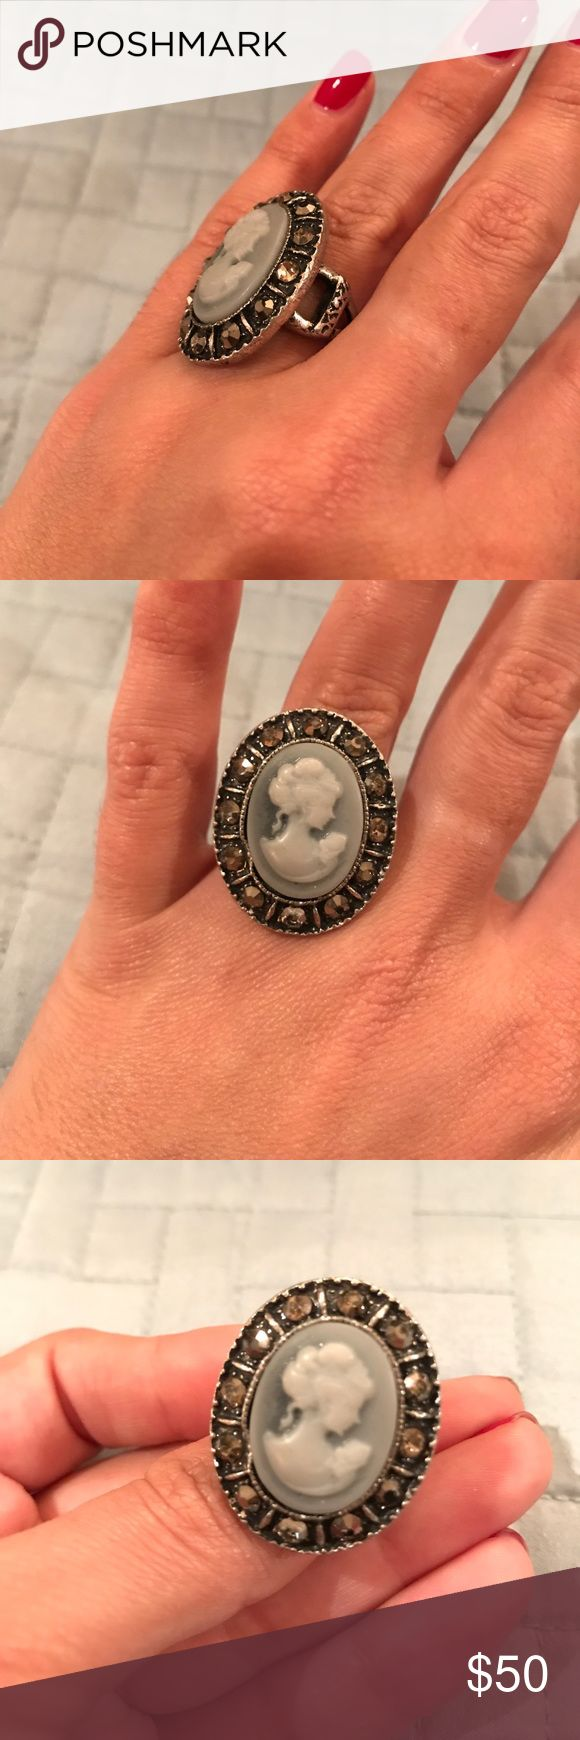 Antique Cameo Brooch Ring Antique Woman Brooch Jewelry Rings